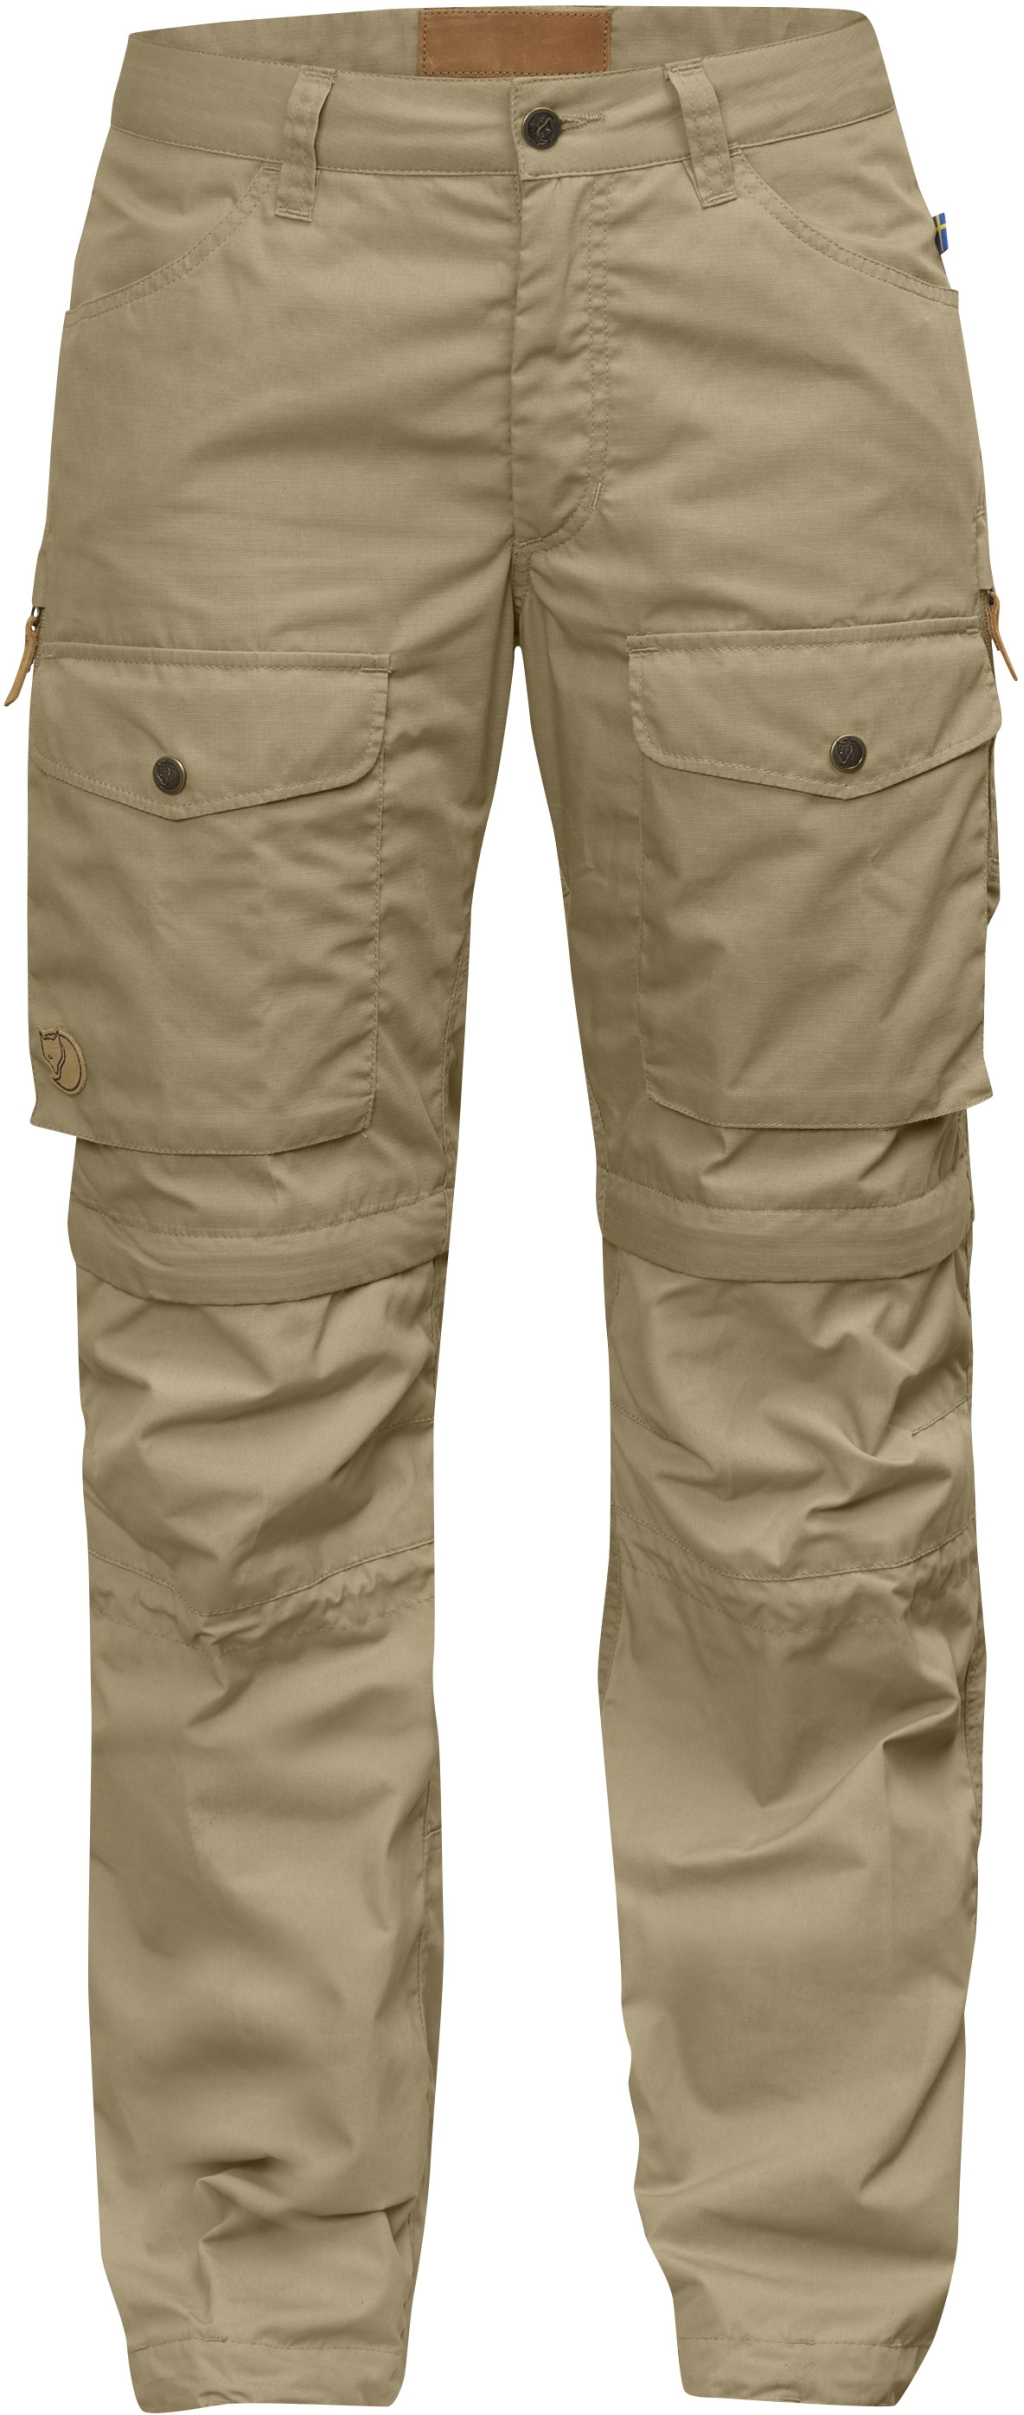 FjallRaven Gaiter Trousers No. 2 W Sand-30